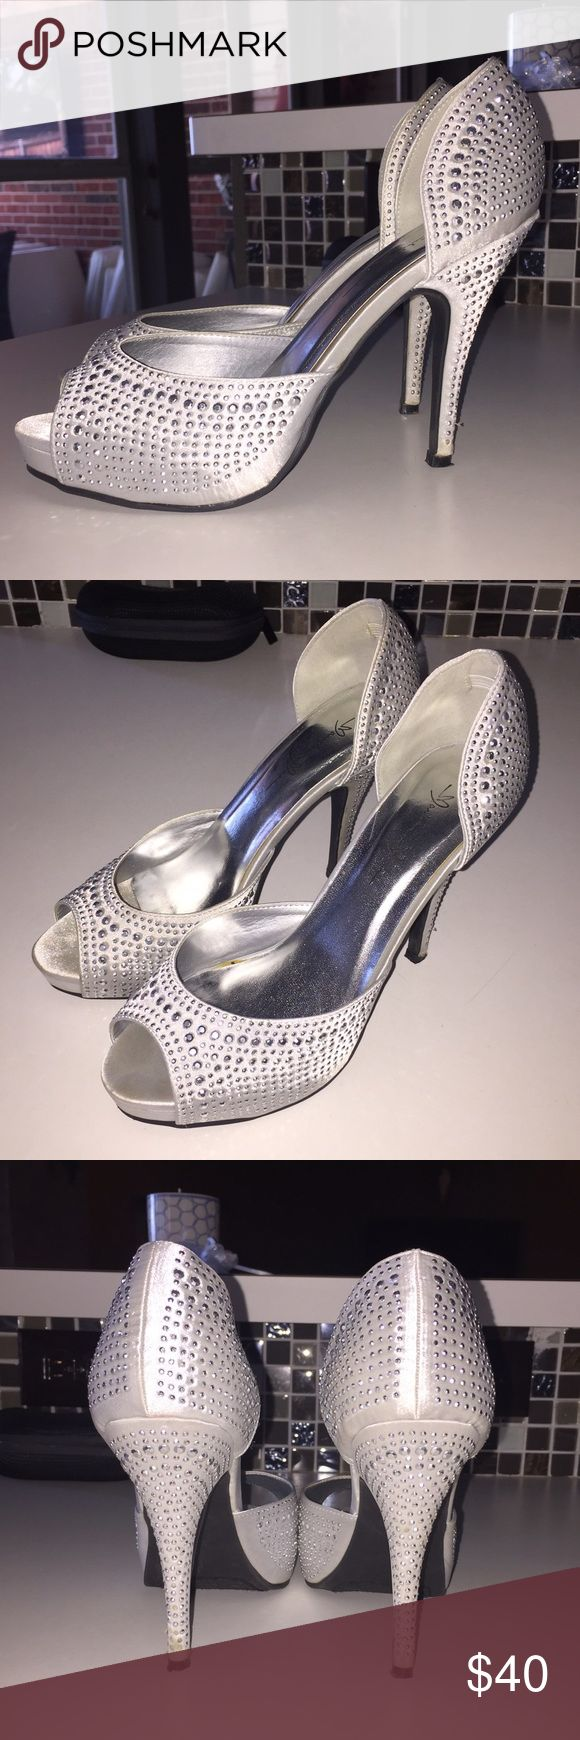 Silver sparkly heels Silver satin peep toe with studs, 4 inches, worn once for formal event. Fits more like a 7 1/2 marichi mani  Shoes Heels